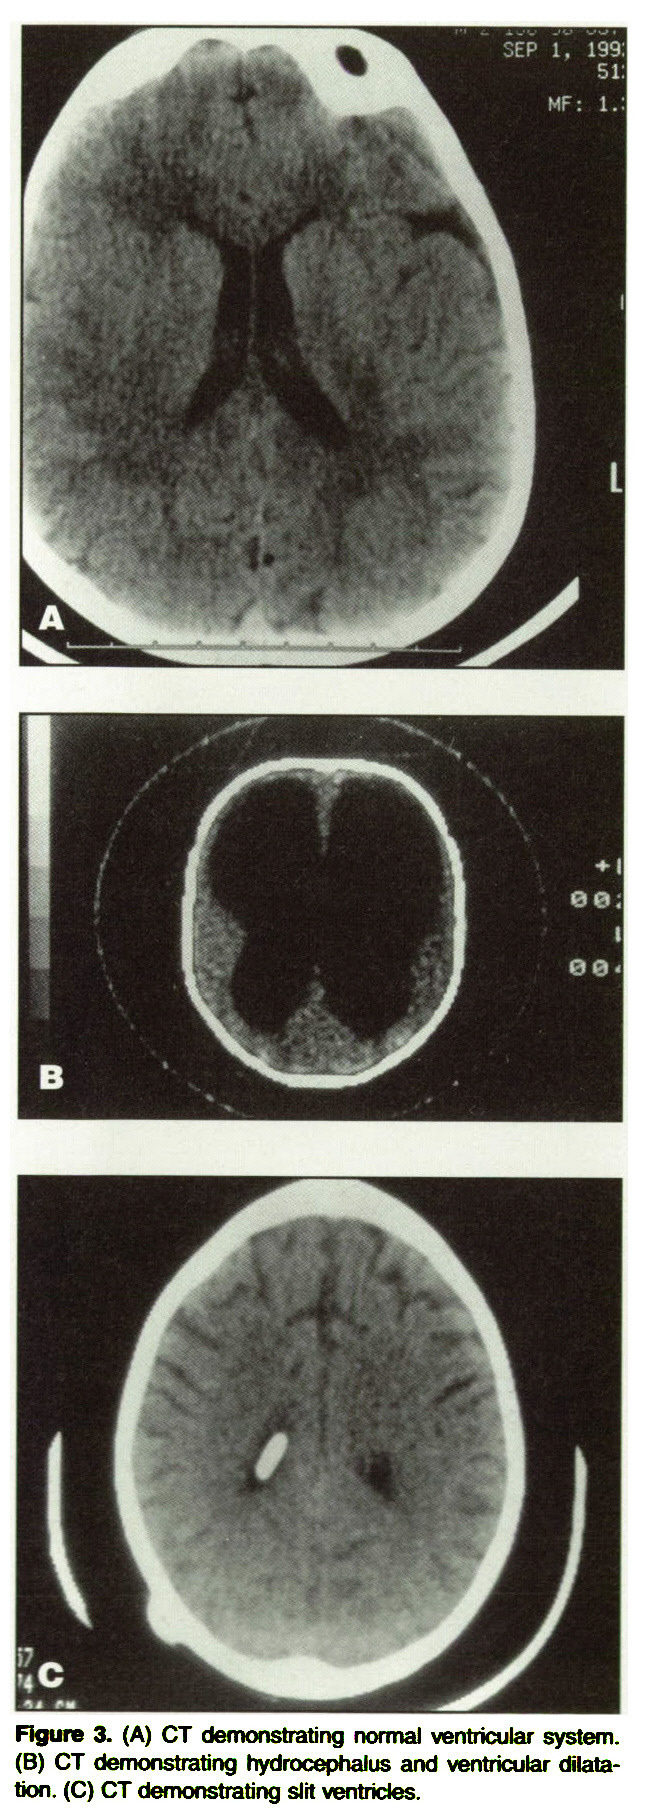 Figure 3. (A) CT demonstrating normal ventricular system. (B) CT demonstrating hydrocephalus and ventricular dilatation. (C) CT demonstrating slit ventricles.